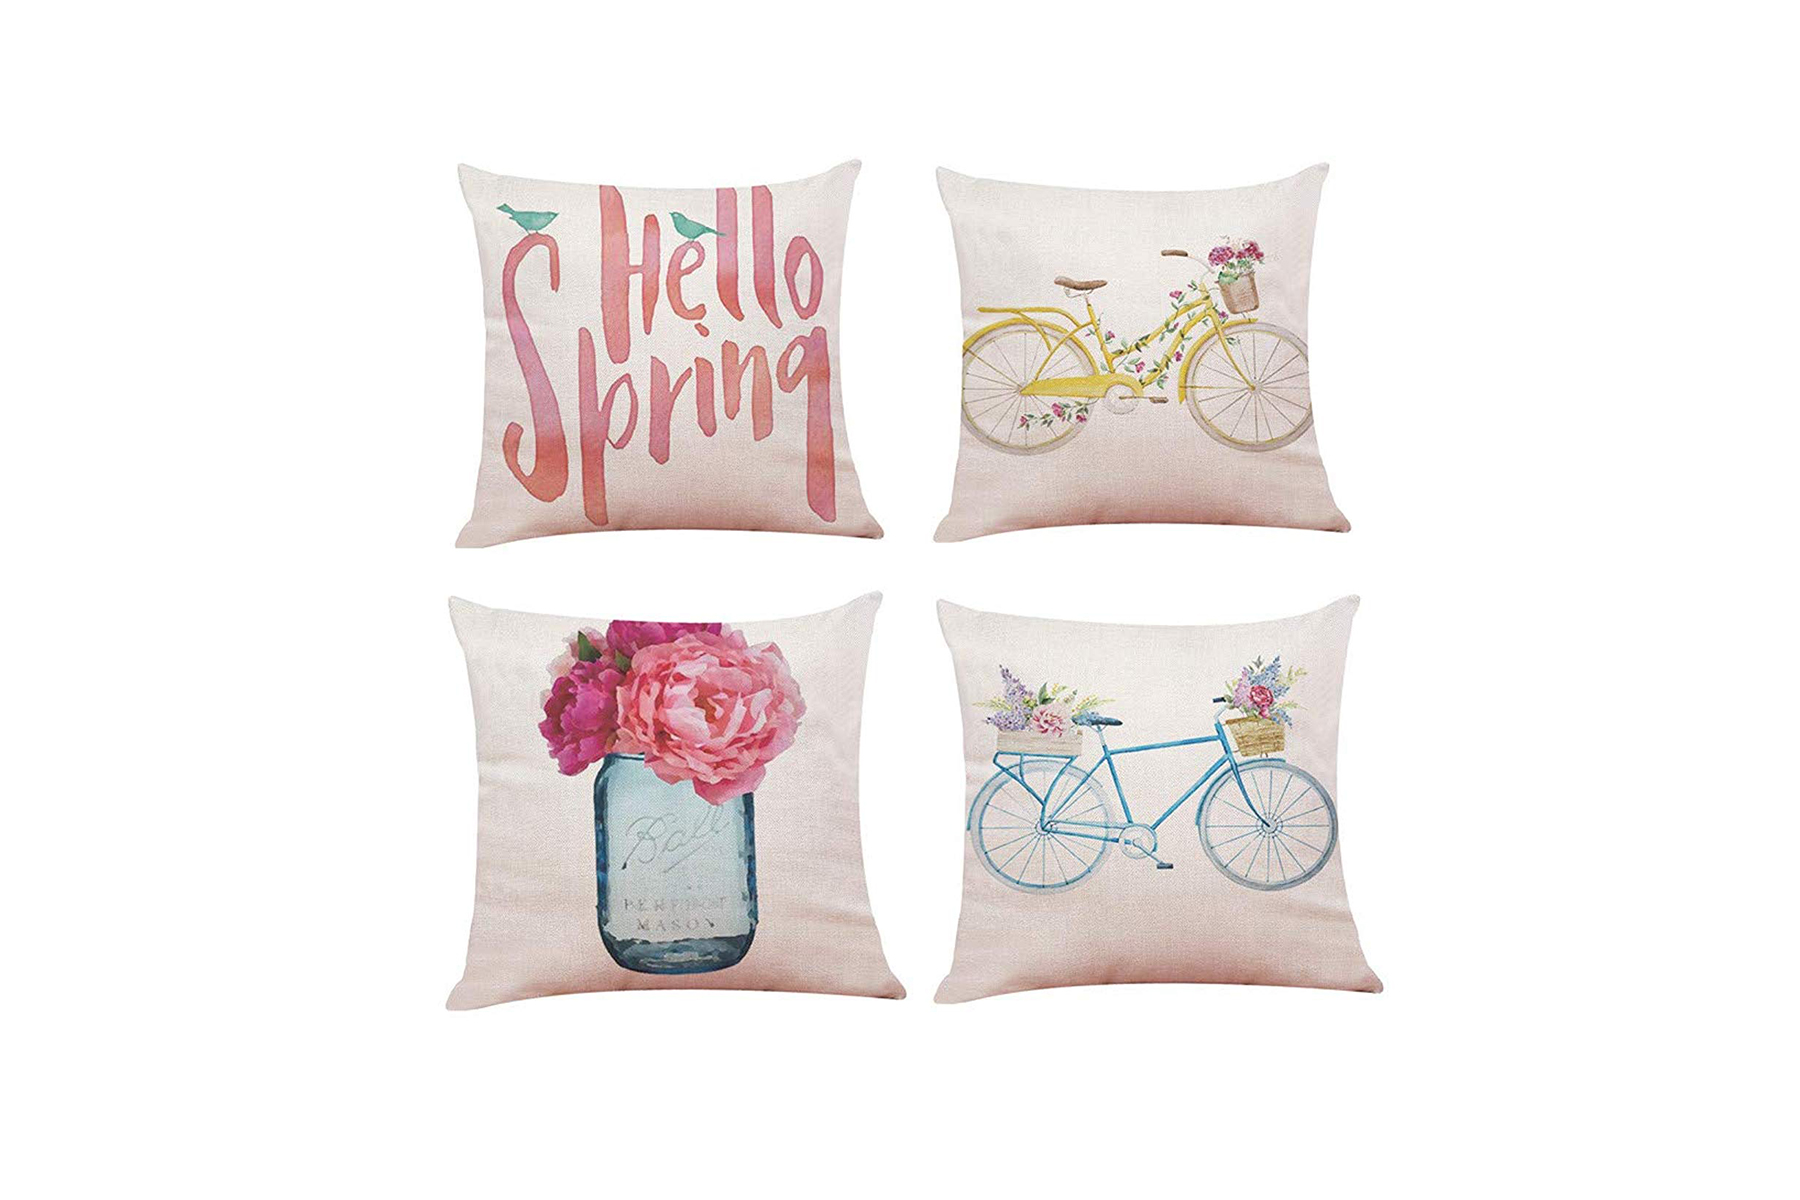 Spring Pillow Cushion Covers for Easter